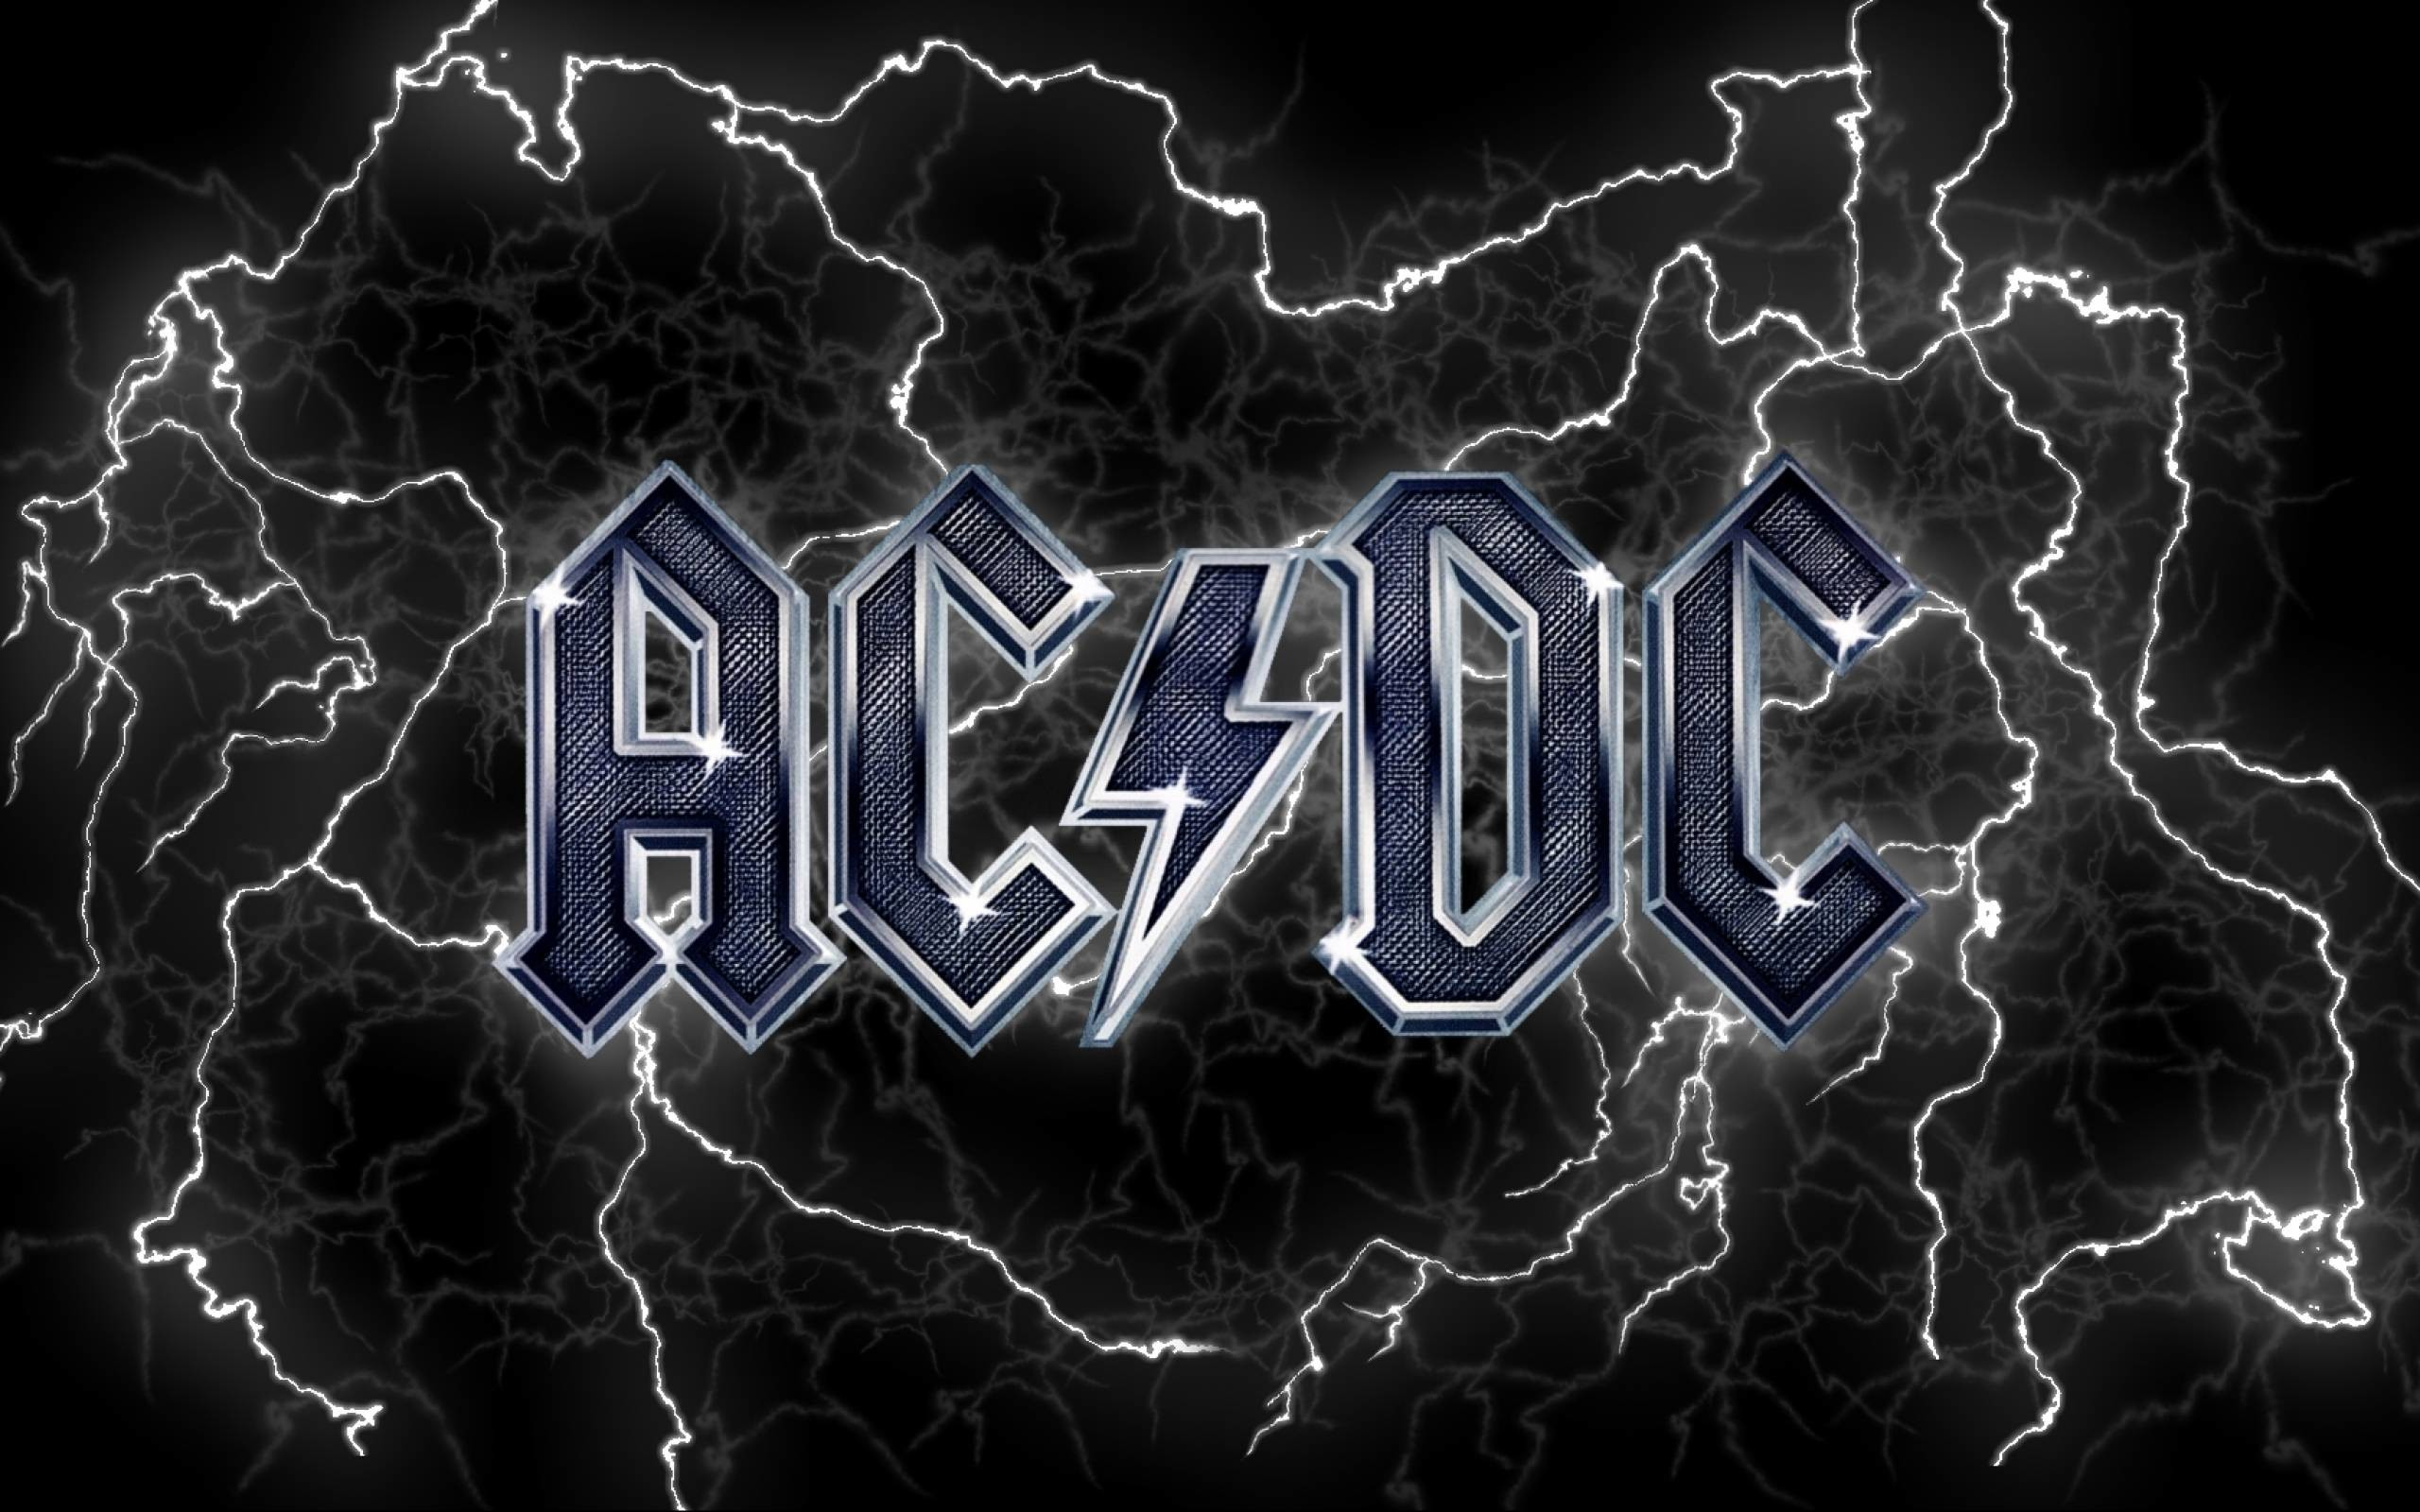 Res: 2560x1600, Ac Dc Wallpaper Wallpapers Hd 3d taken from Music Acdc Wallpaper .